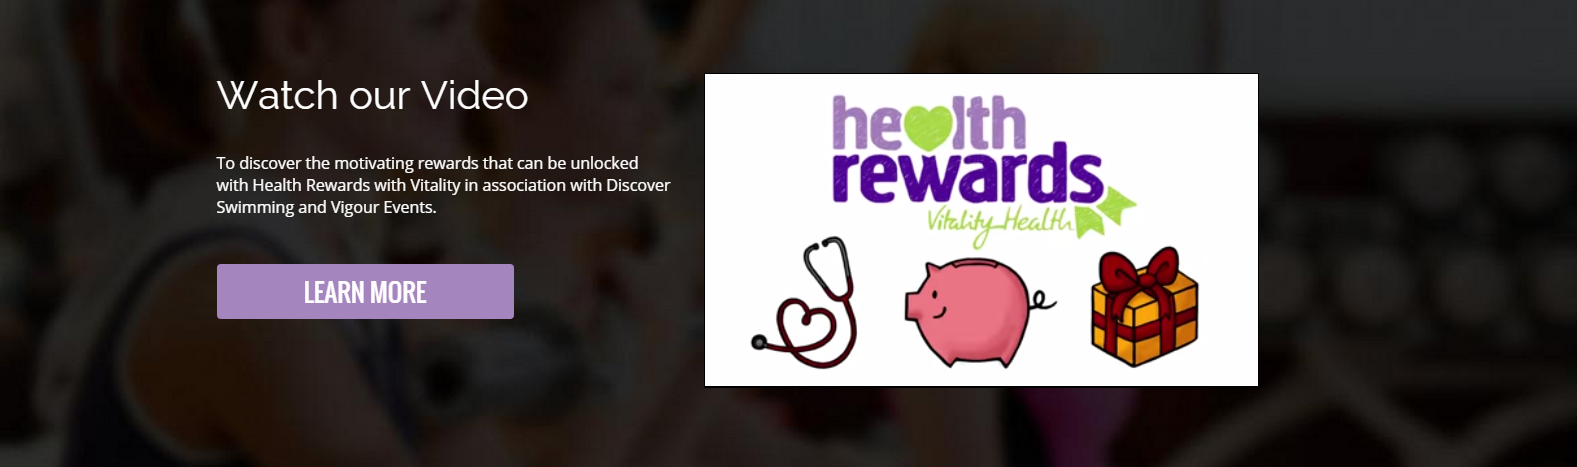 health rewards vid image